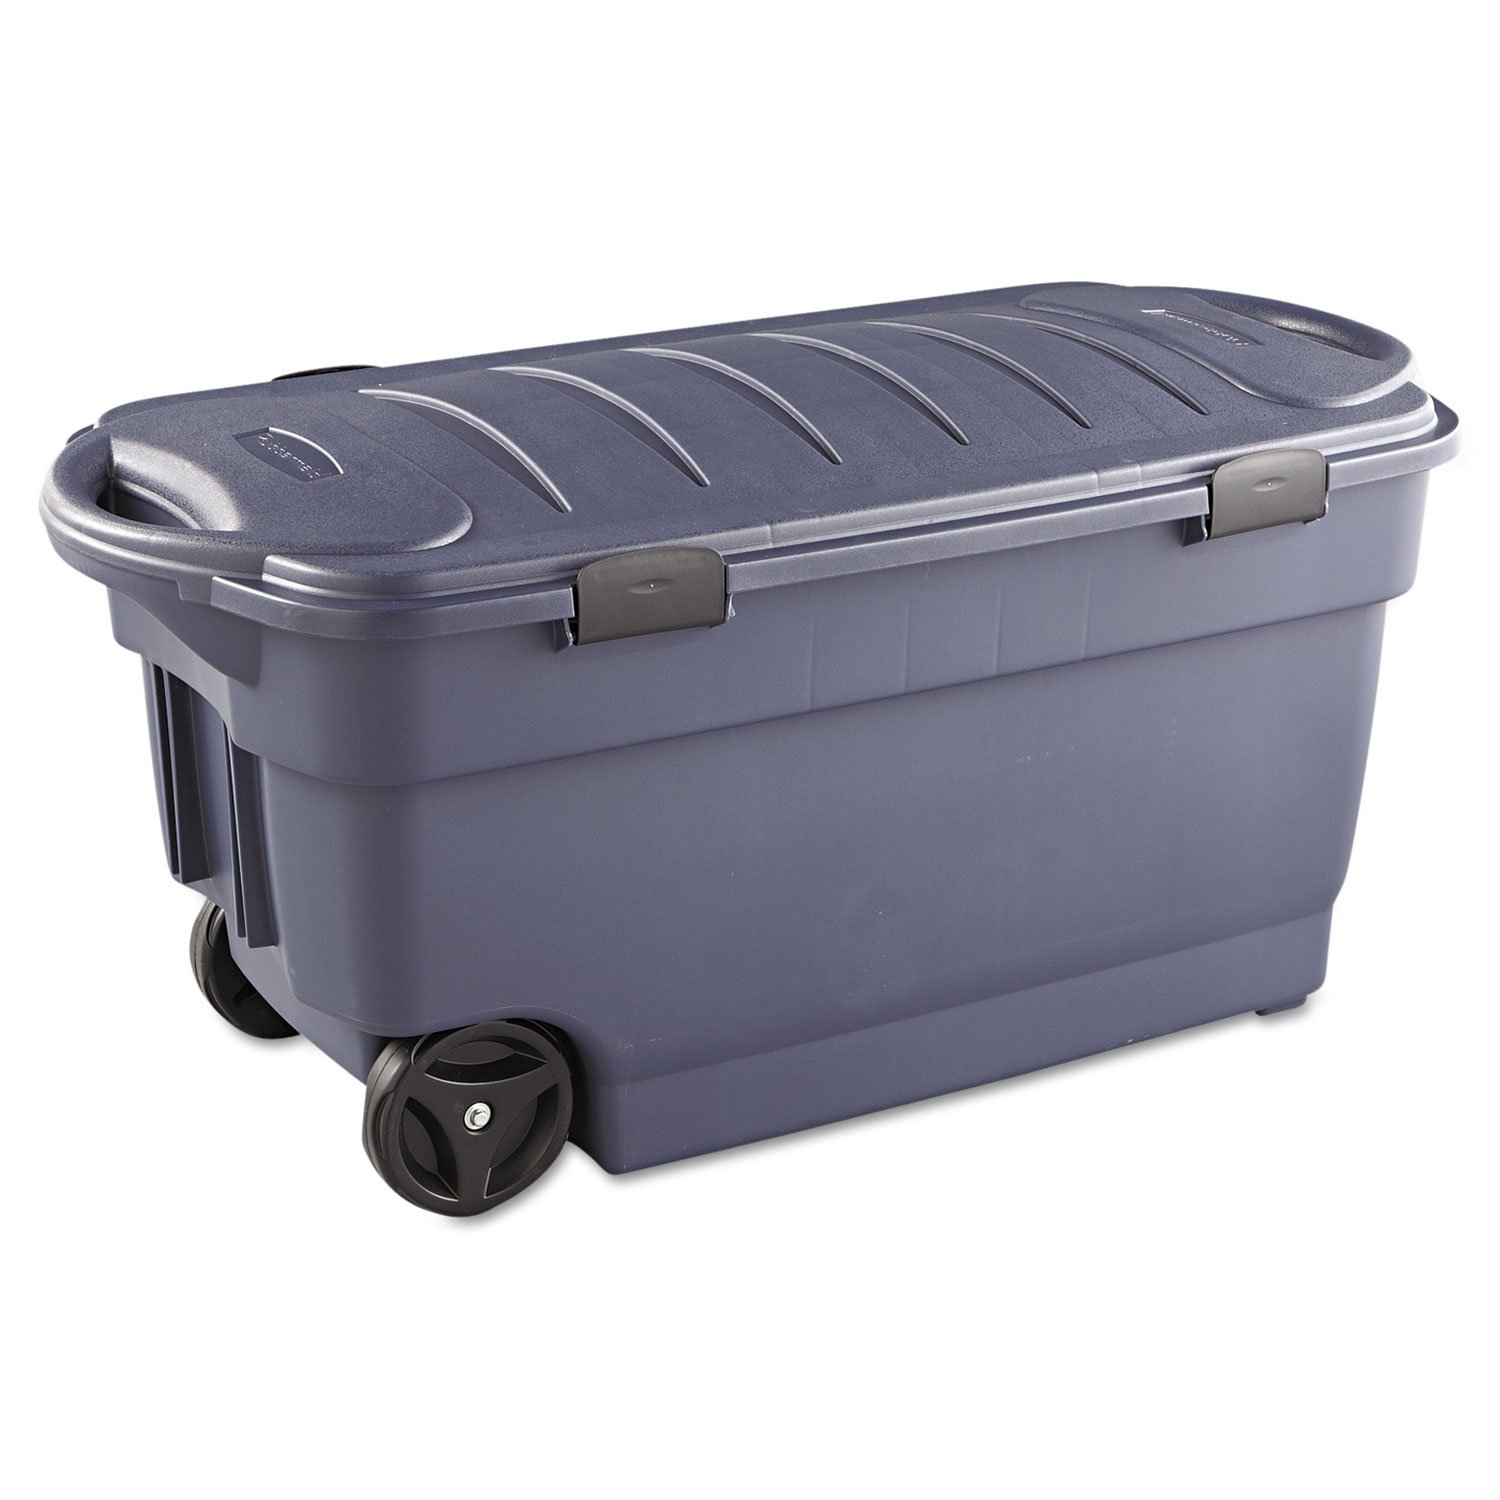 Exceptionnel Amazon.com : RUBBERMAID 45 Gallon Roughneck Wheeled Storage Box, Dark  Indigo Metallic (RUB2463DIM) : Waste Bins : Office Products